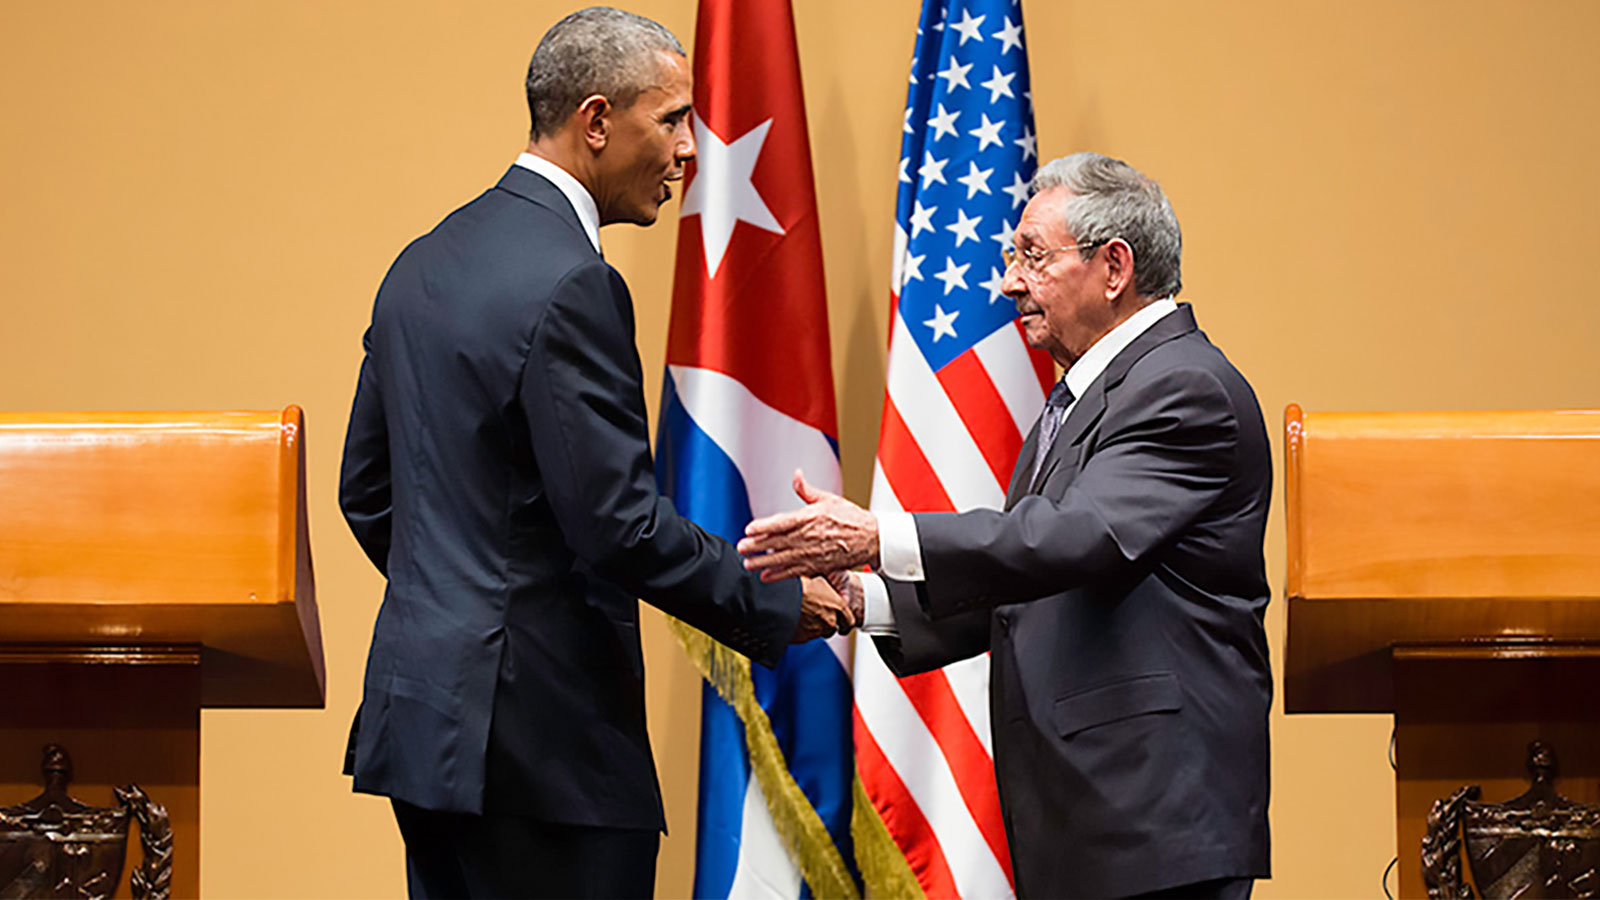 GERMÁN GORRAIZ LÓPEZ: New stage in Cuba-United States relations?